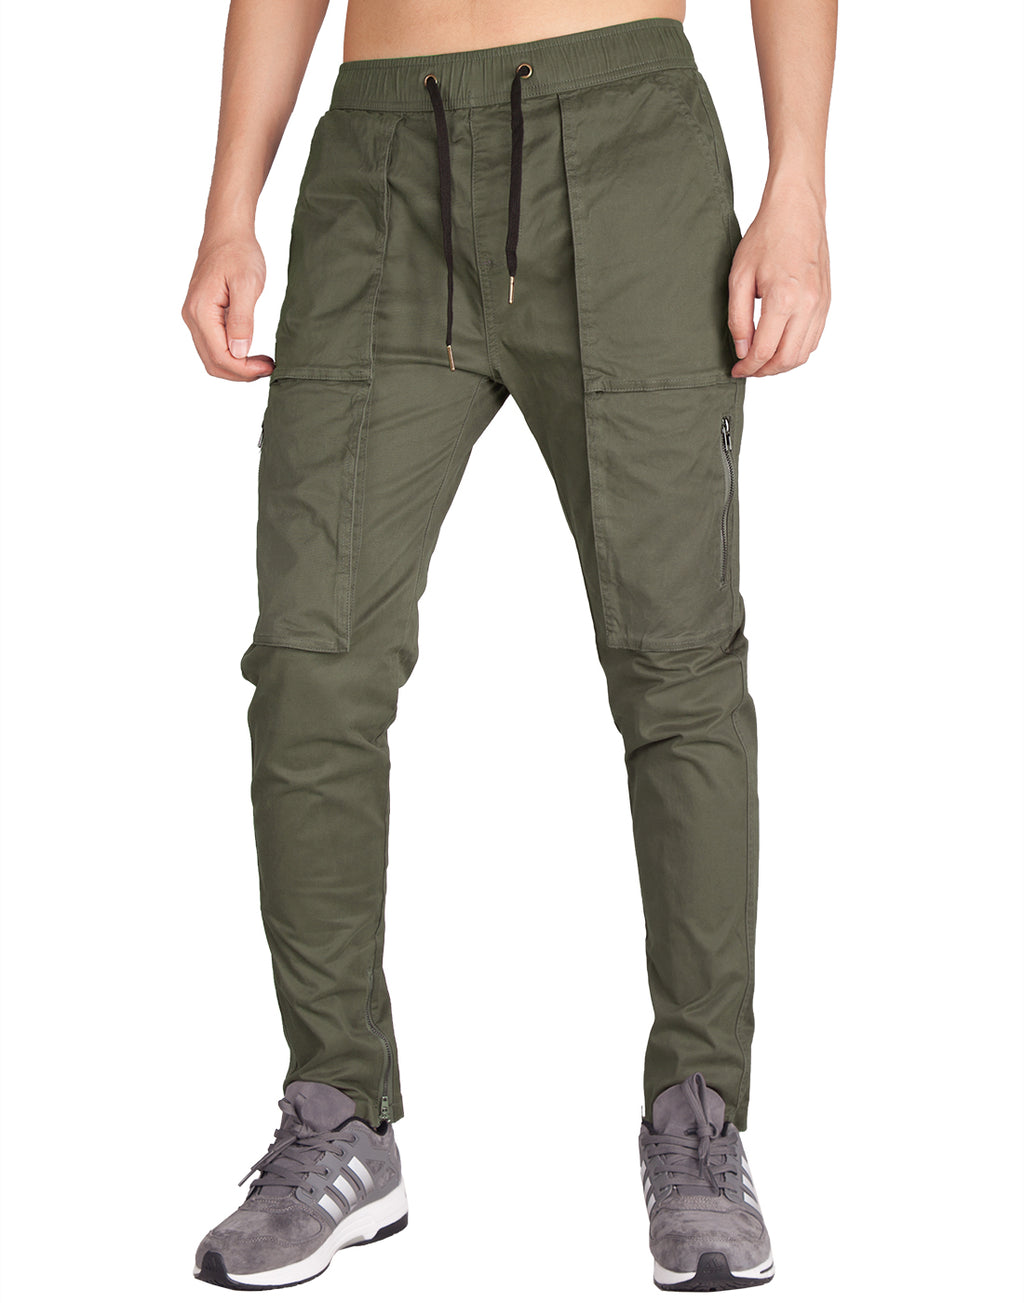 Man Designer Cargo Pants Dark Grey Green - italymorn